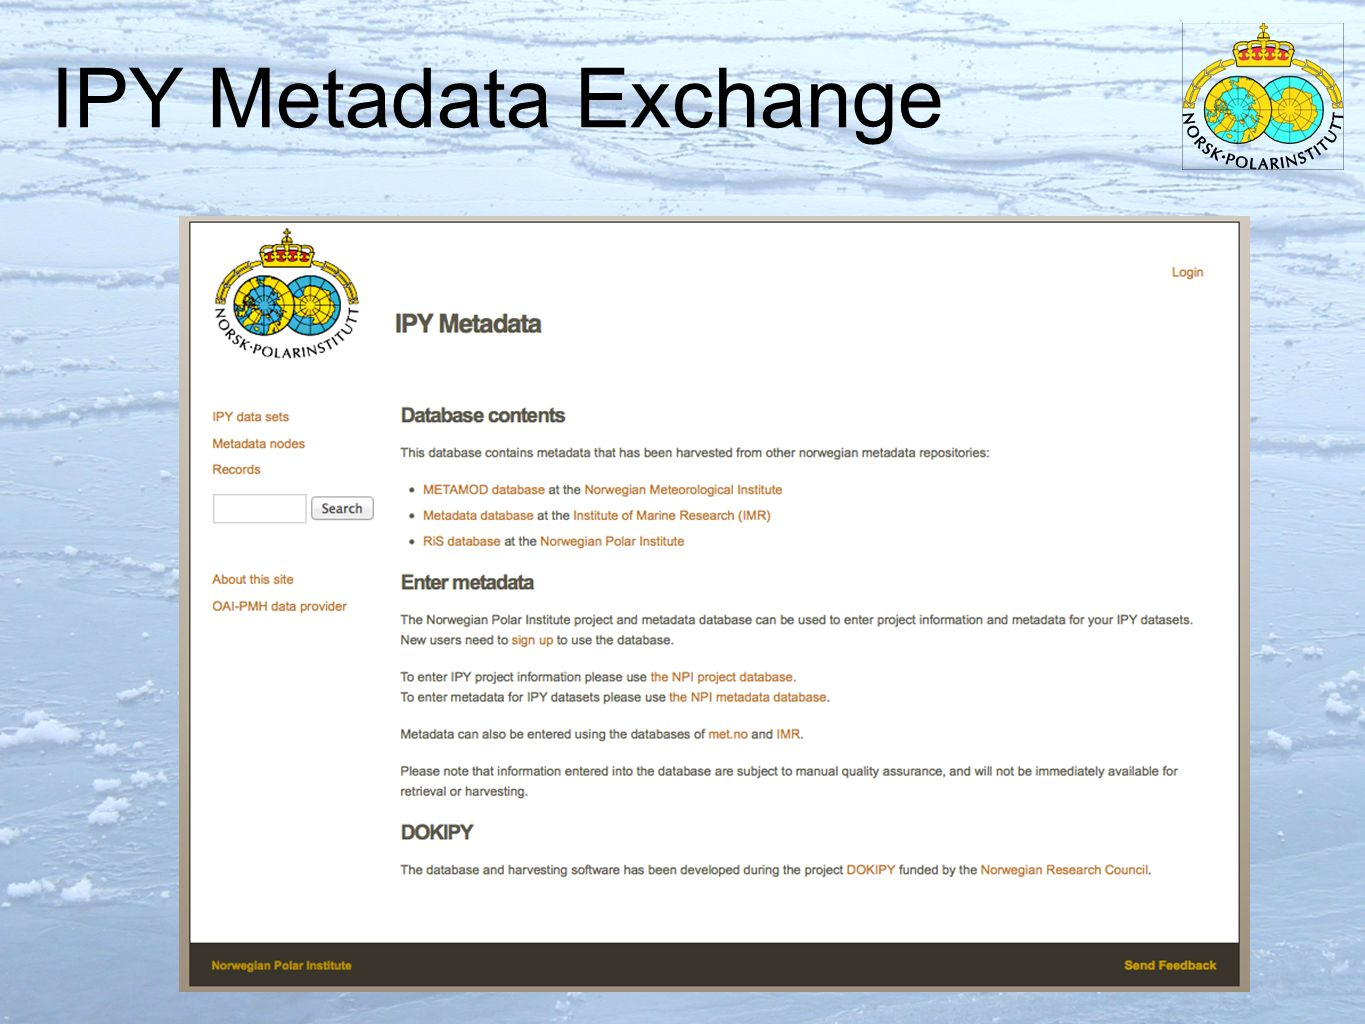 IPY Metadata Exchange 10